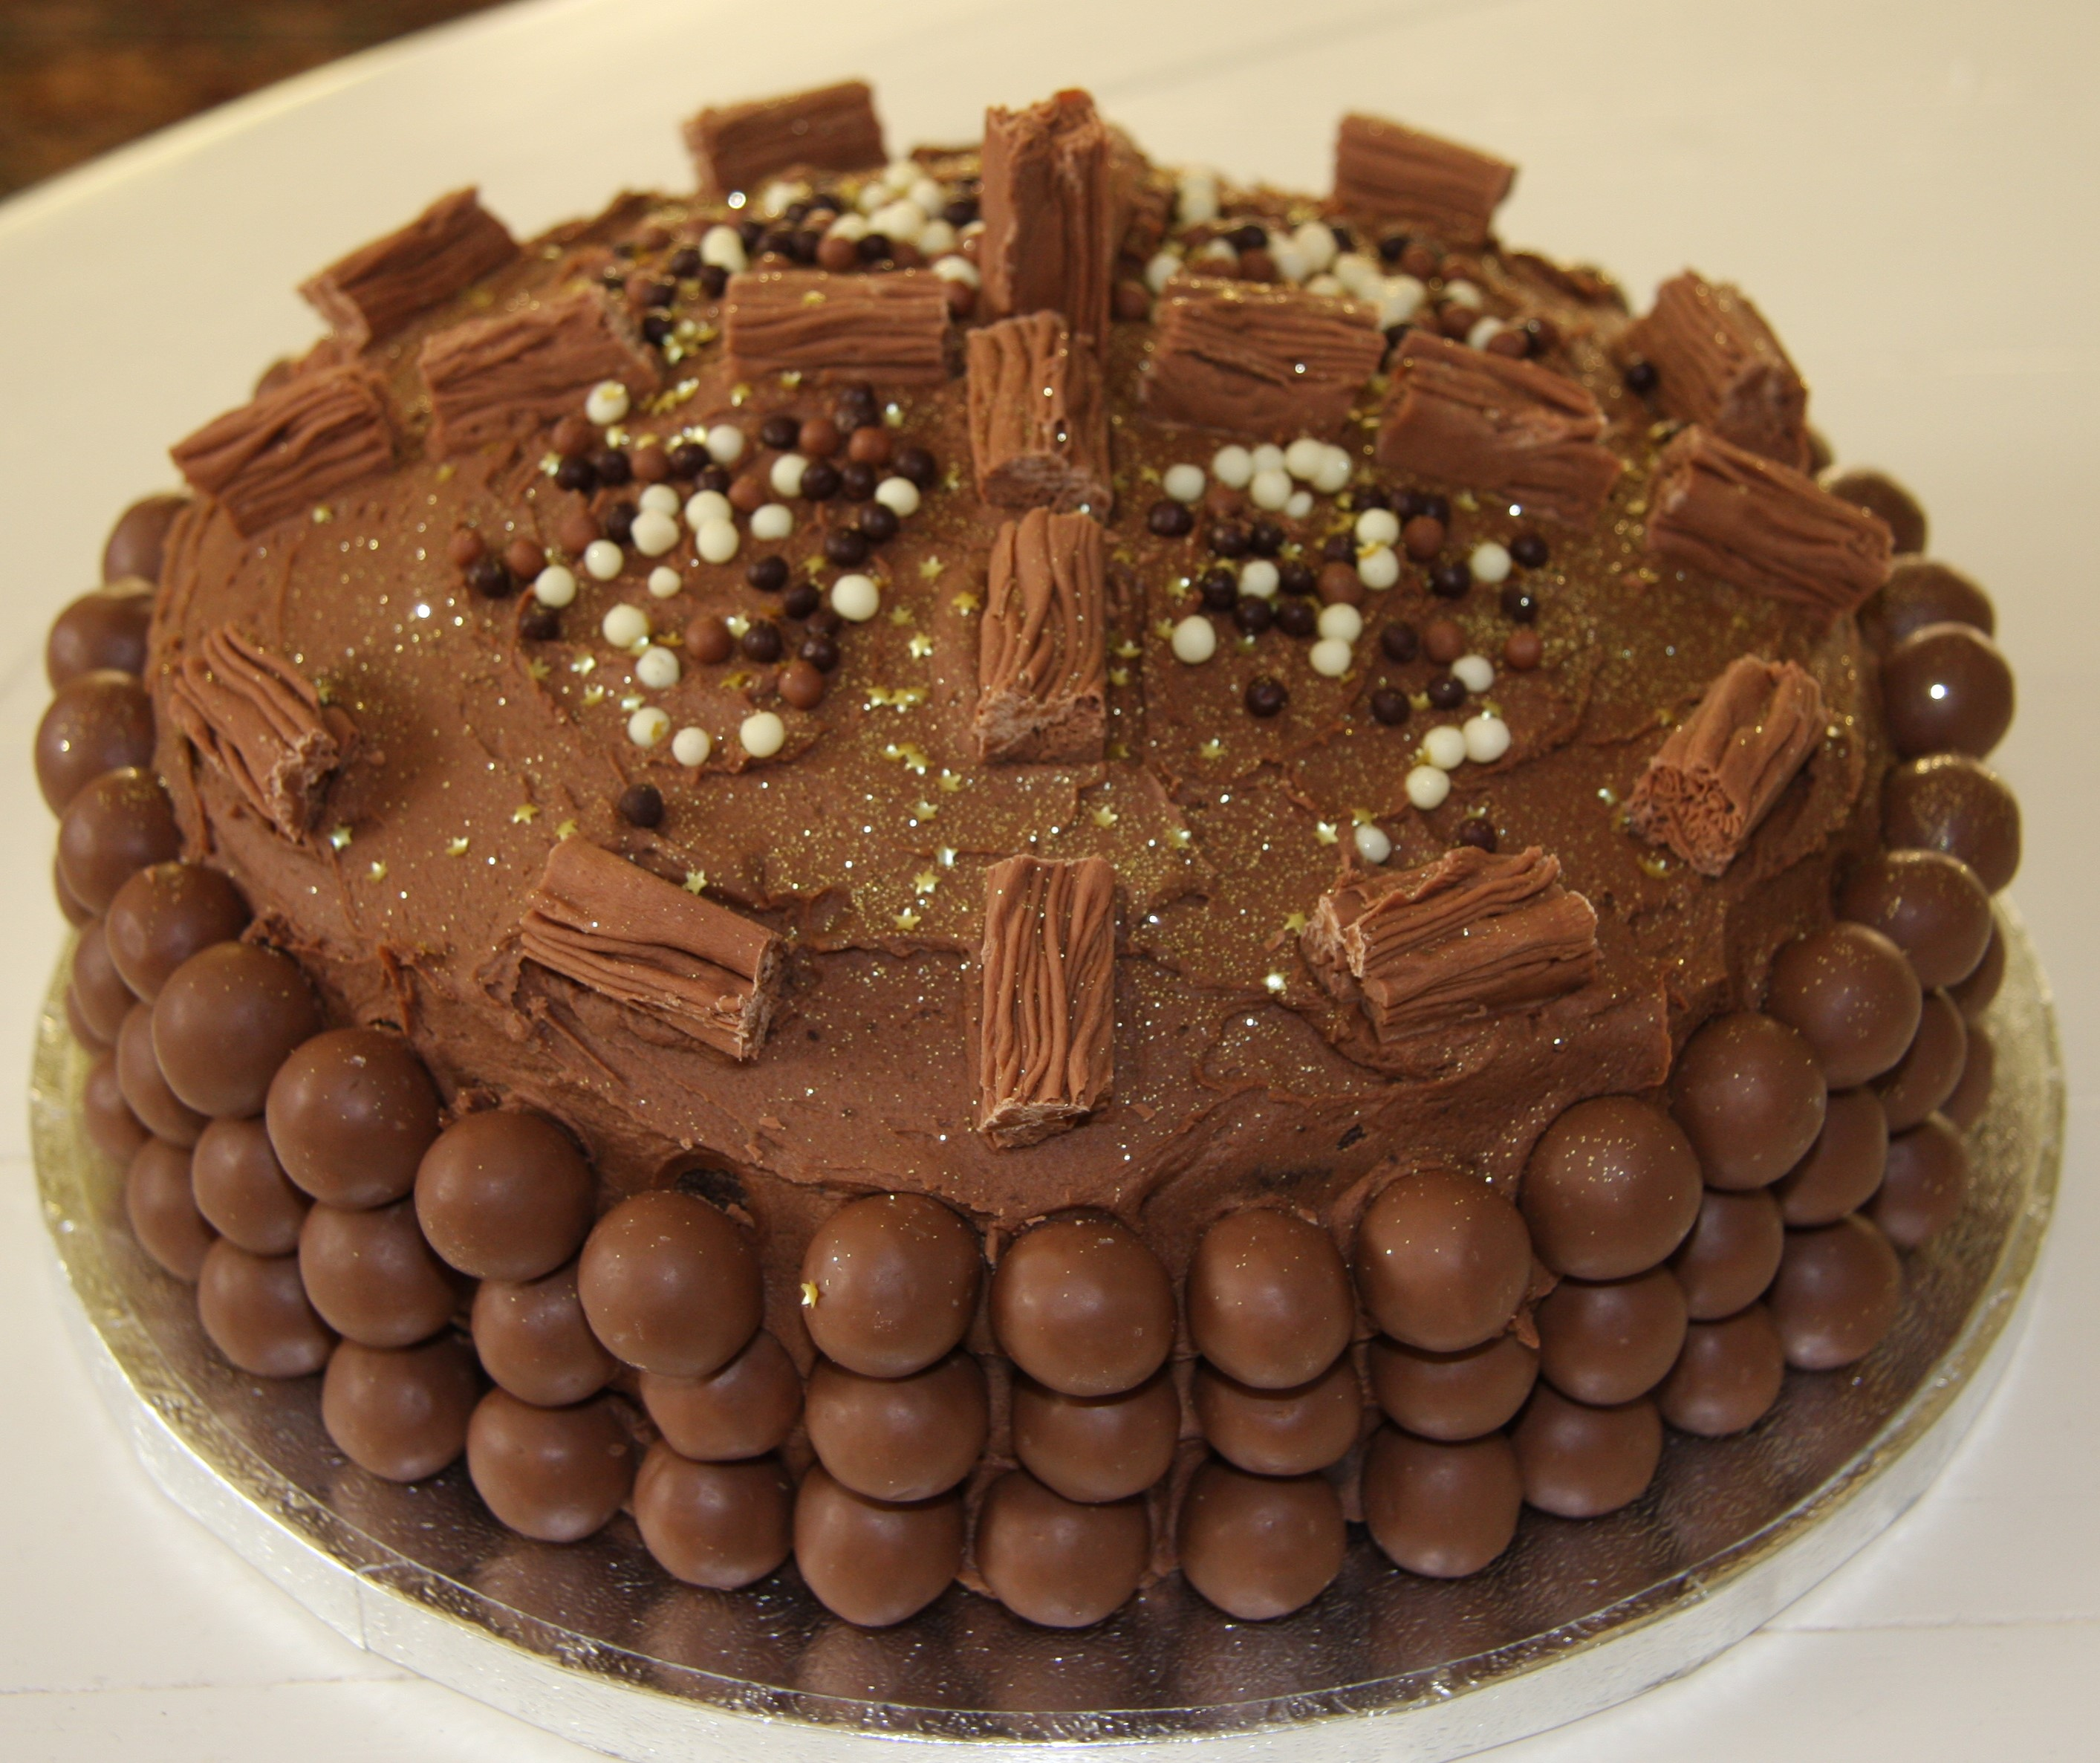 Chocolate Birthday Cake with extra chocolate lovinghomemade